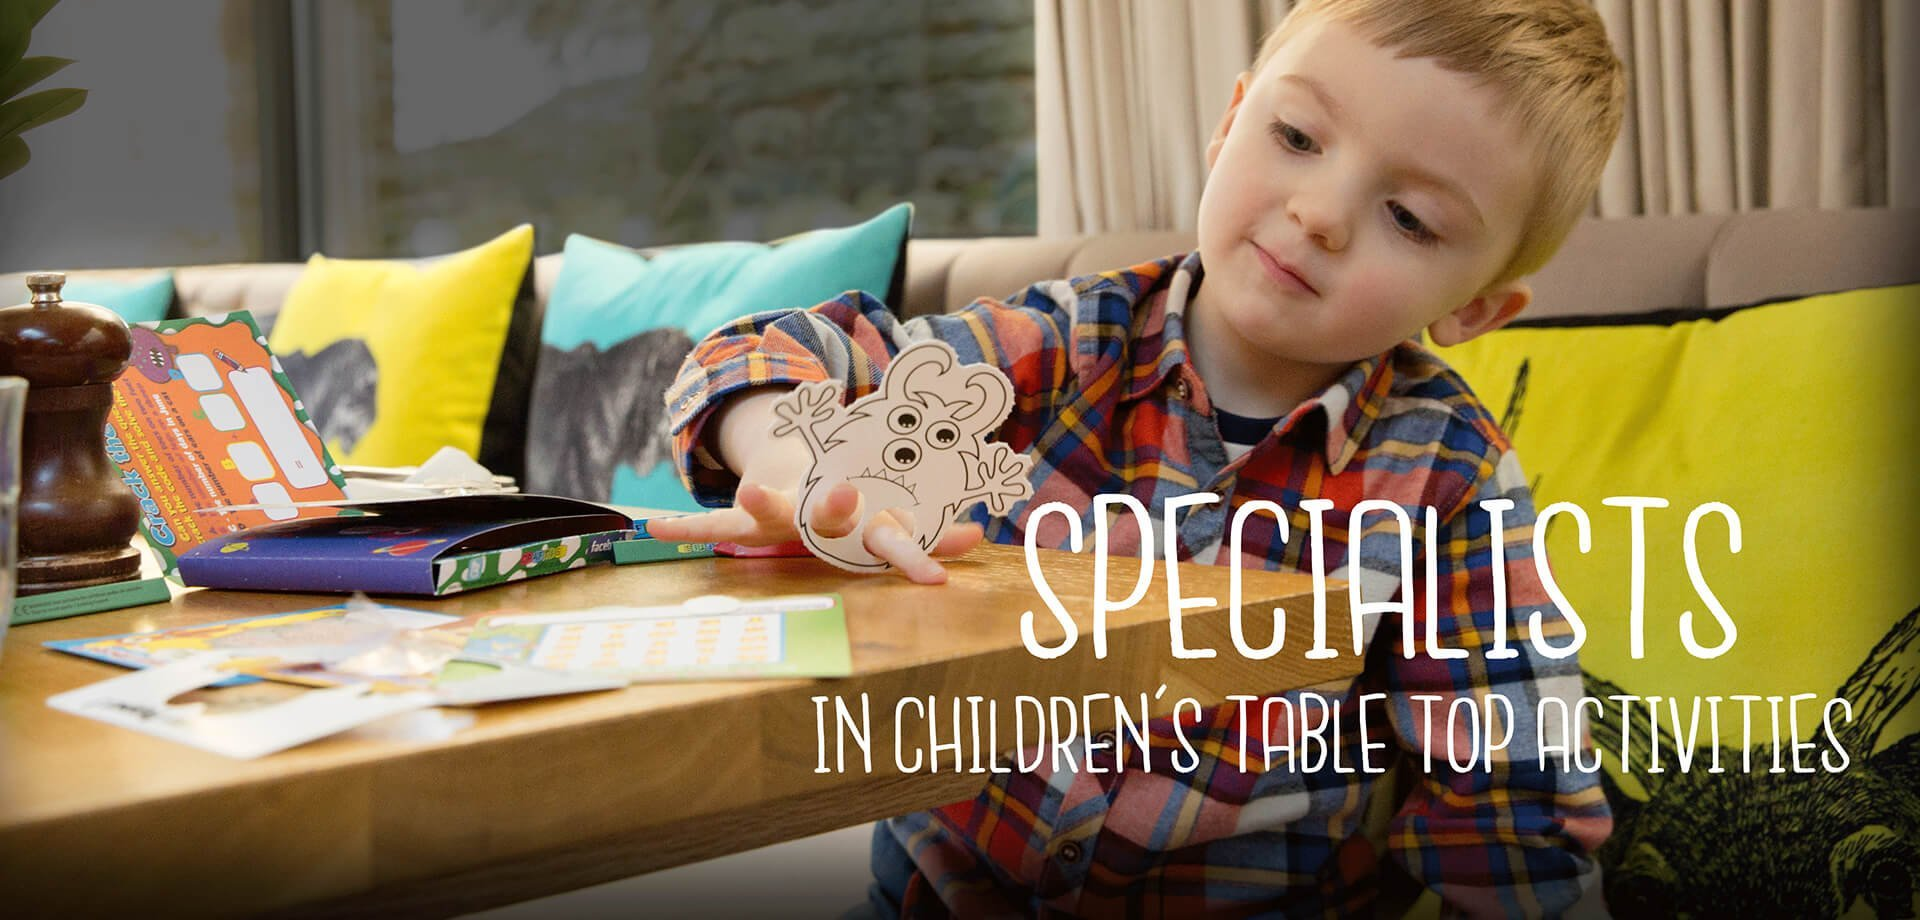 SPECIALISTS IN CHILDRENS TABLETOP ACTIVITIES